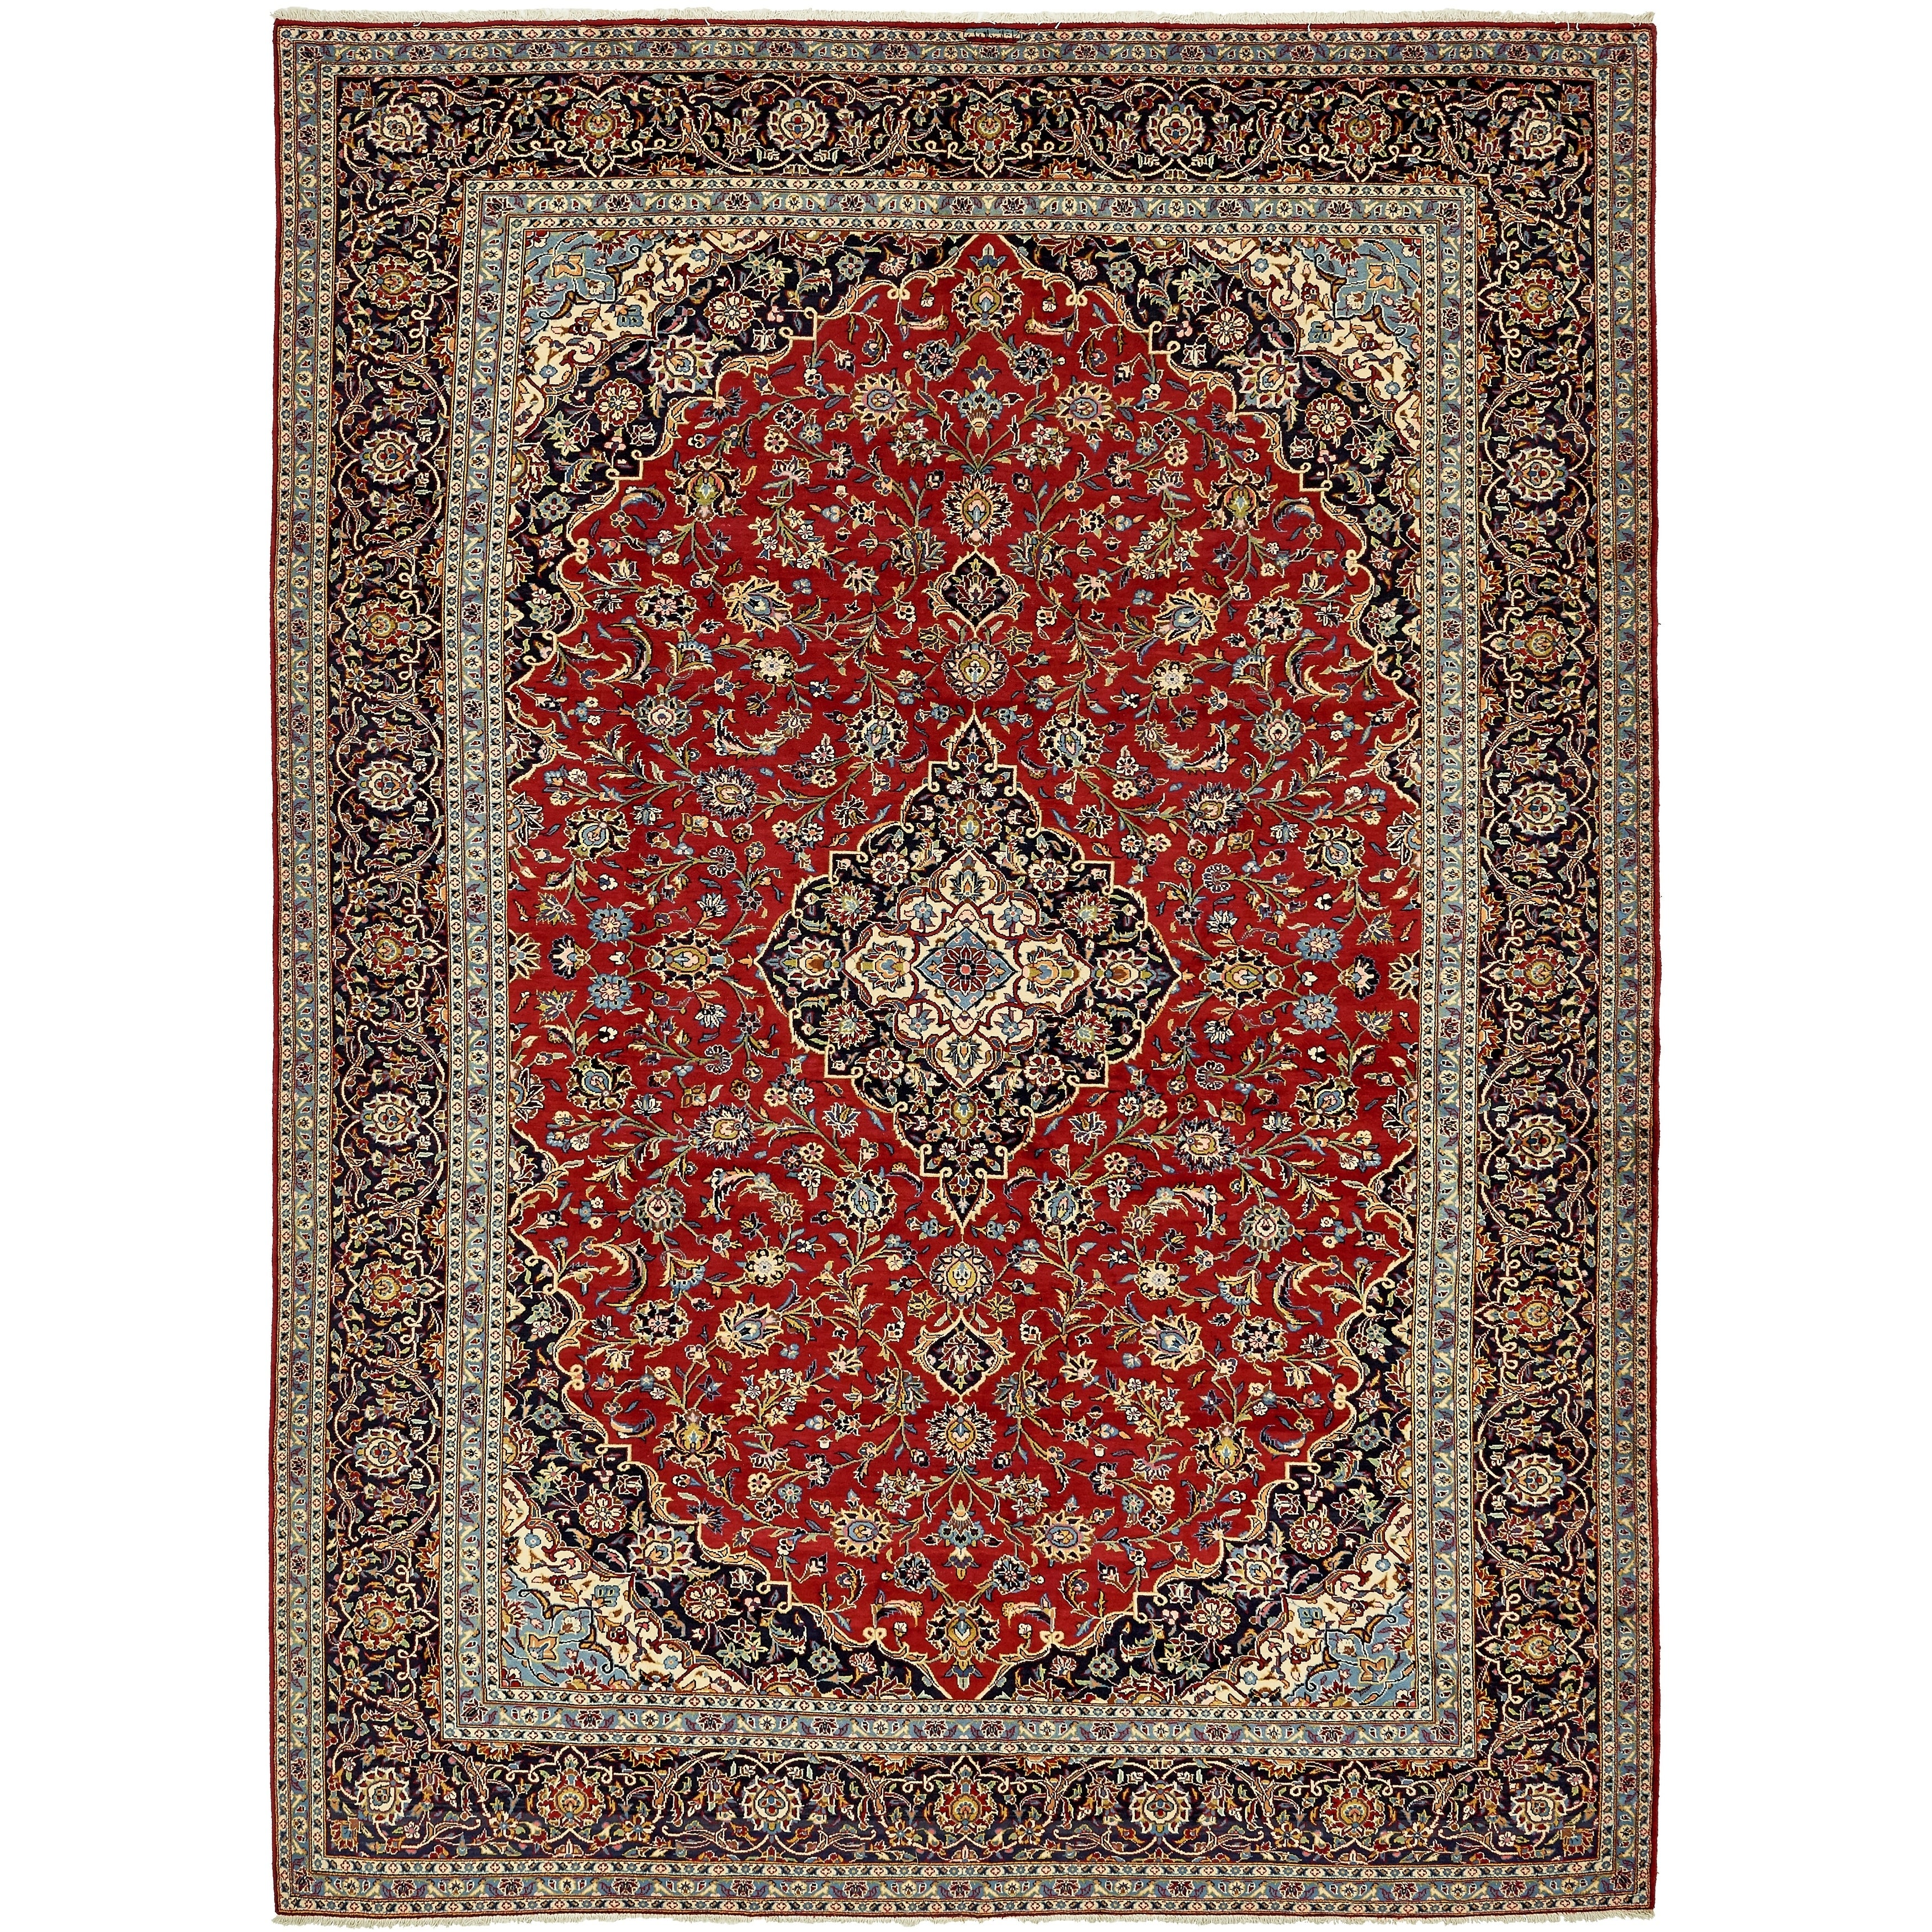 Hand Knotted Kashan Wool Area Rug - 9' 10 x 13' 5 (Red - 9' 10 x 13' 5)